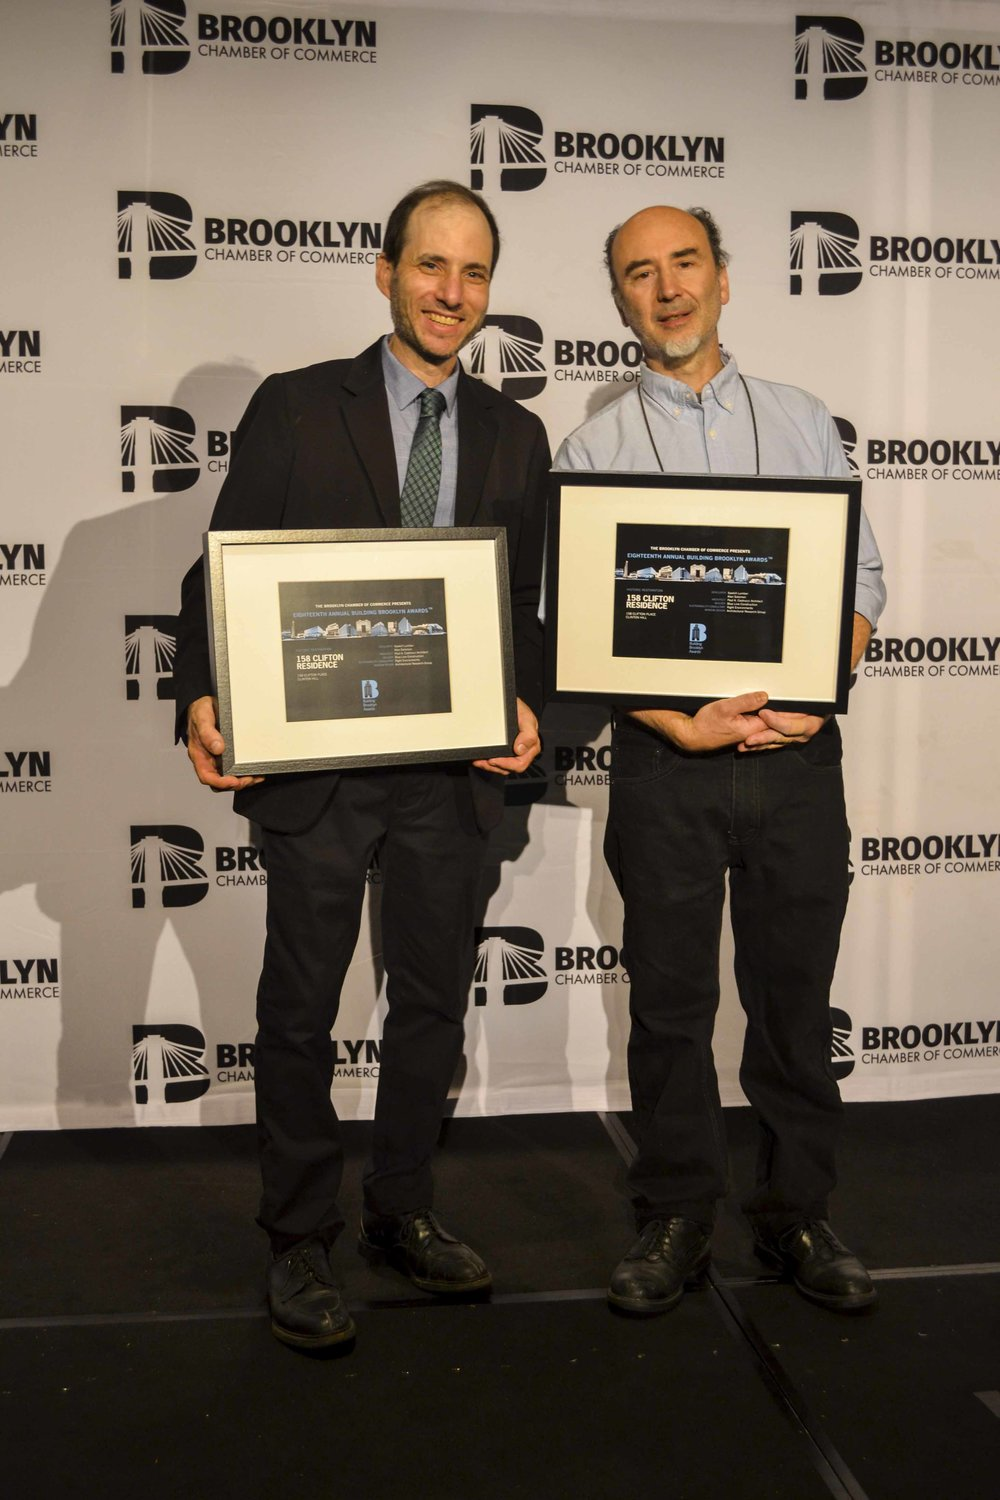 20180801_2018 building brooklyn awards_3617_lowres.jpg